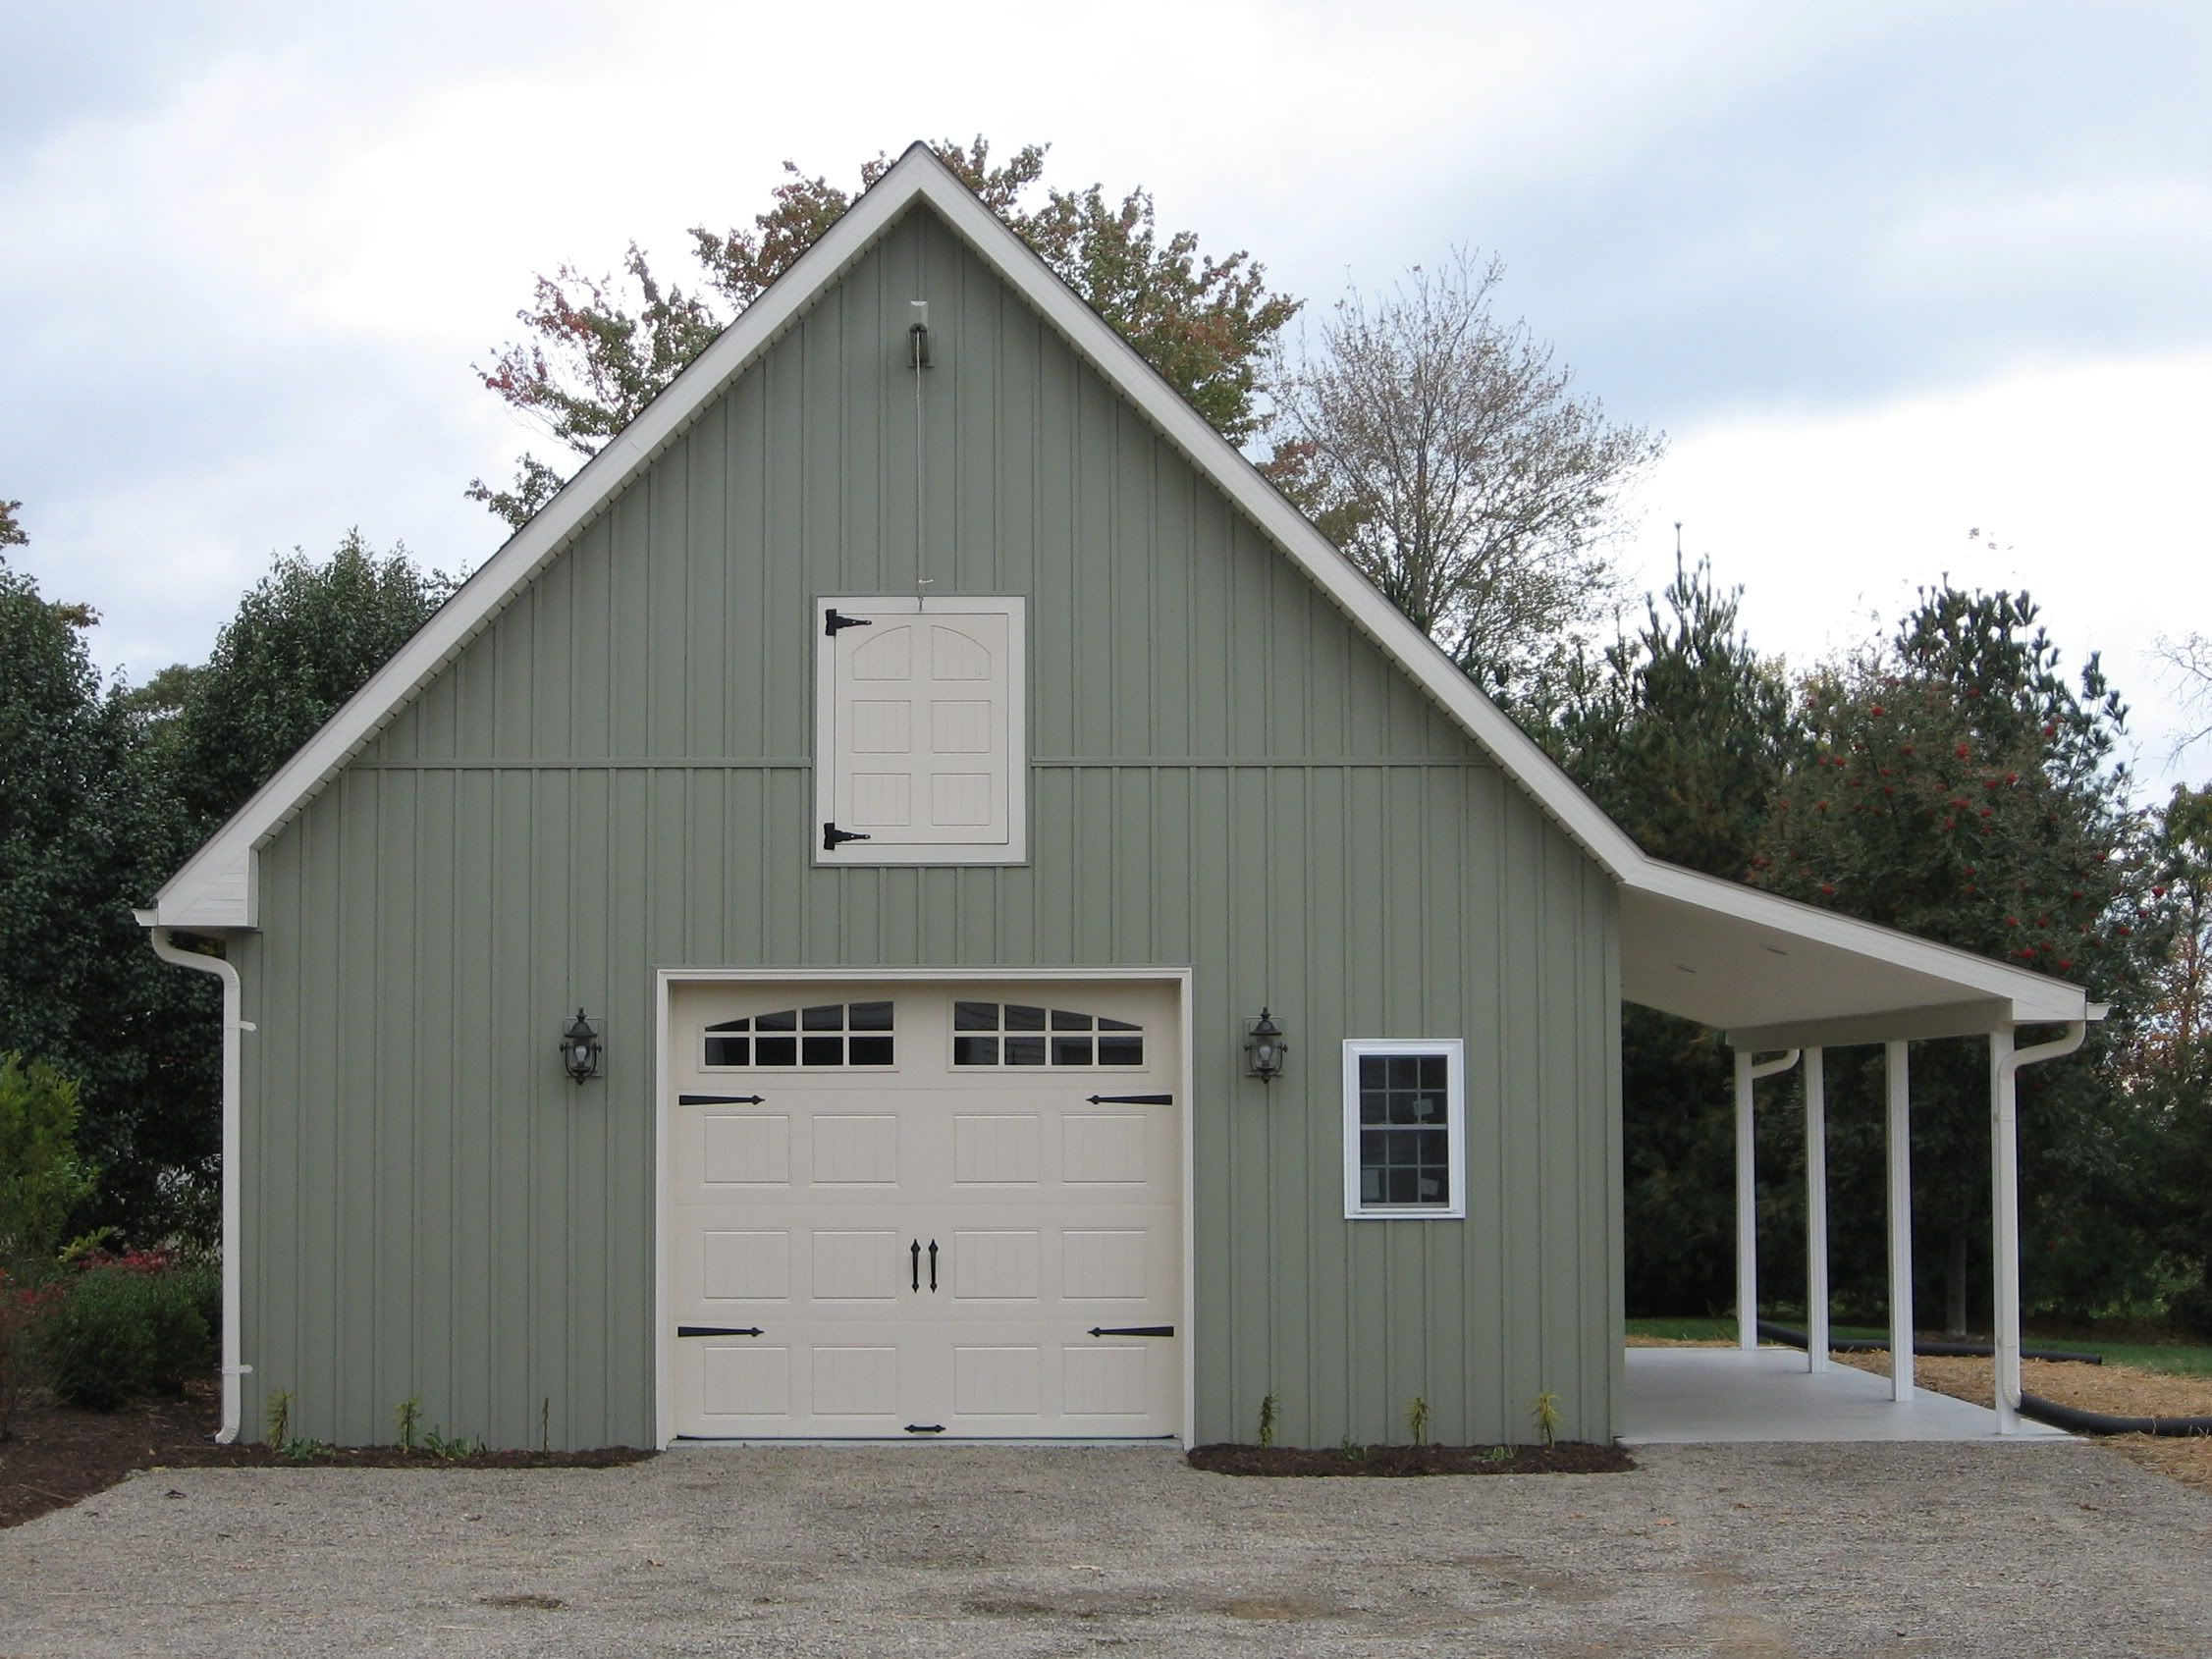 24 39 x 24 39 main garage body with an 8 39 x 9 39 overhead garage for Pole barn shop plans